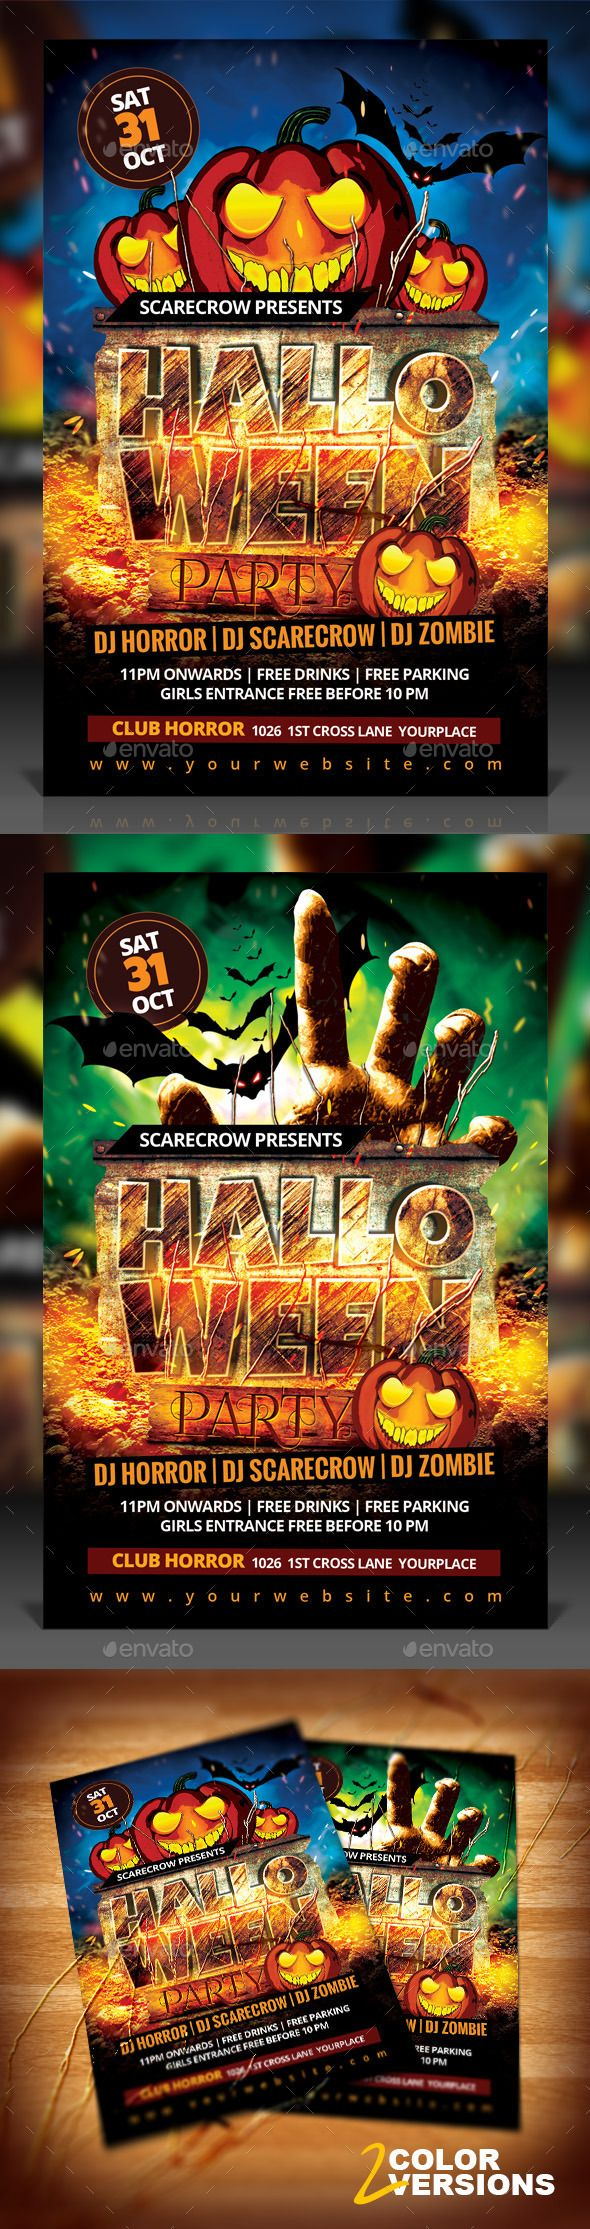 Poster design free download - Halloween Party Flyer